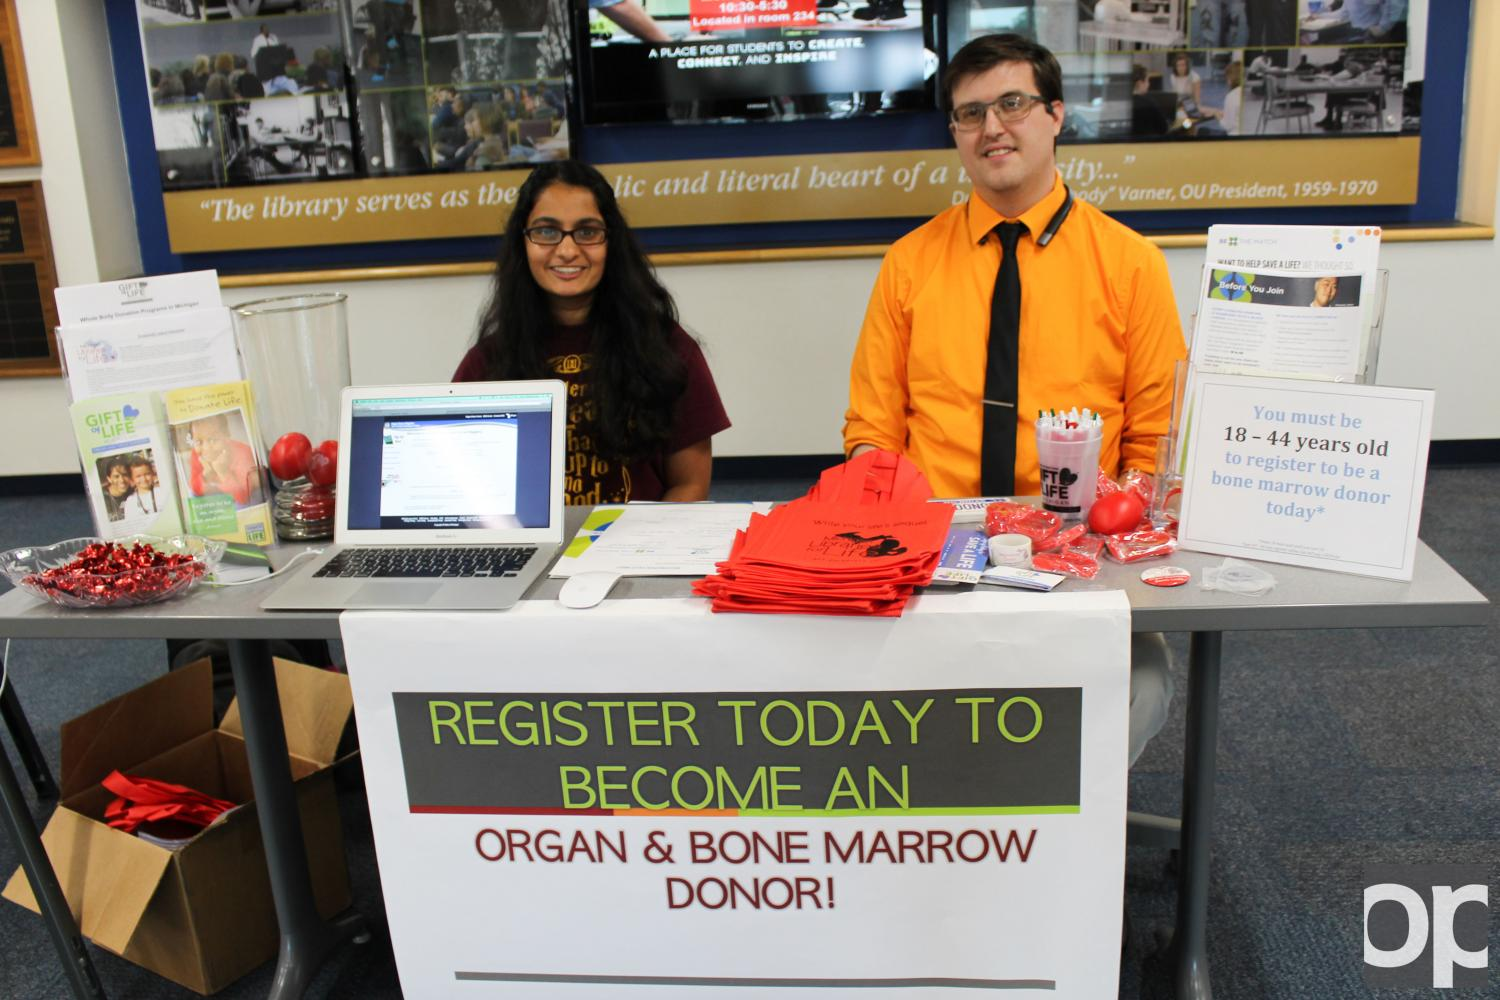 The OUWB registered 39 organ donors and 50 bone marrow donors during this annual drive.